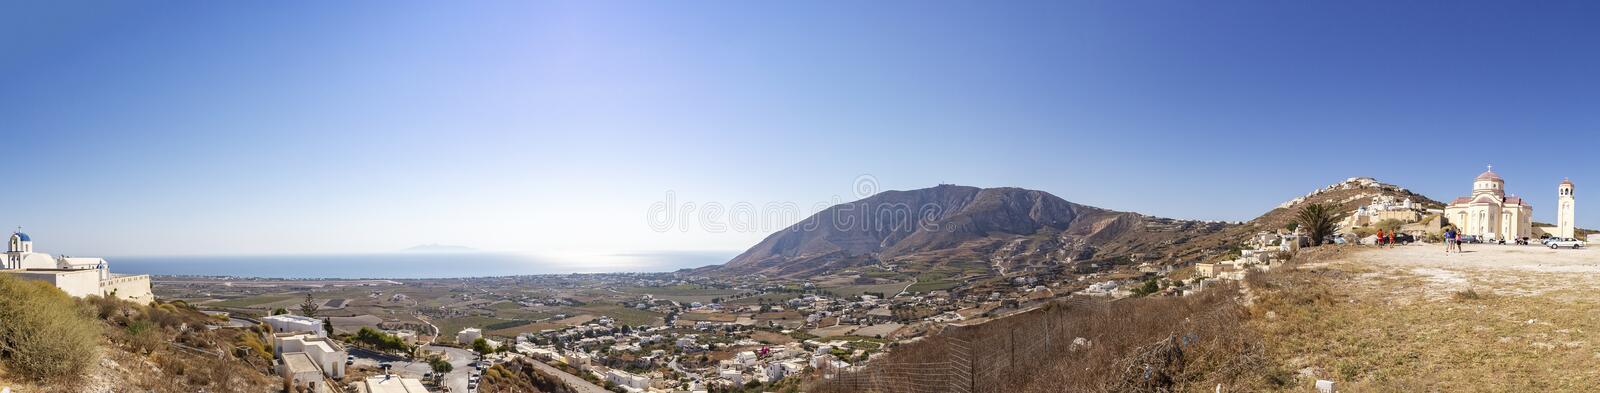 Panorama view from Agios Charalambos on the eastern side of Santorini with the airport and the city Kamari stock image